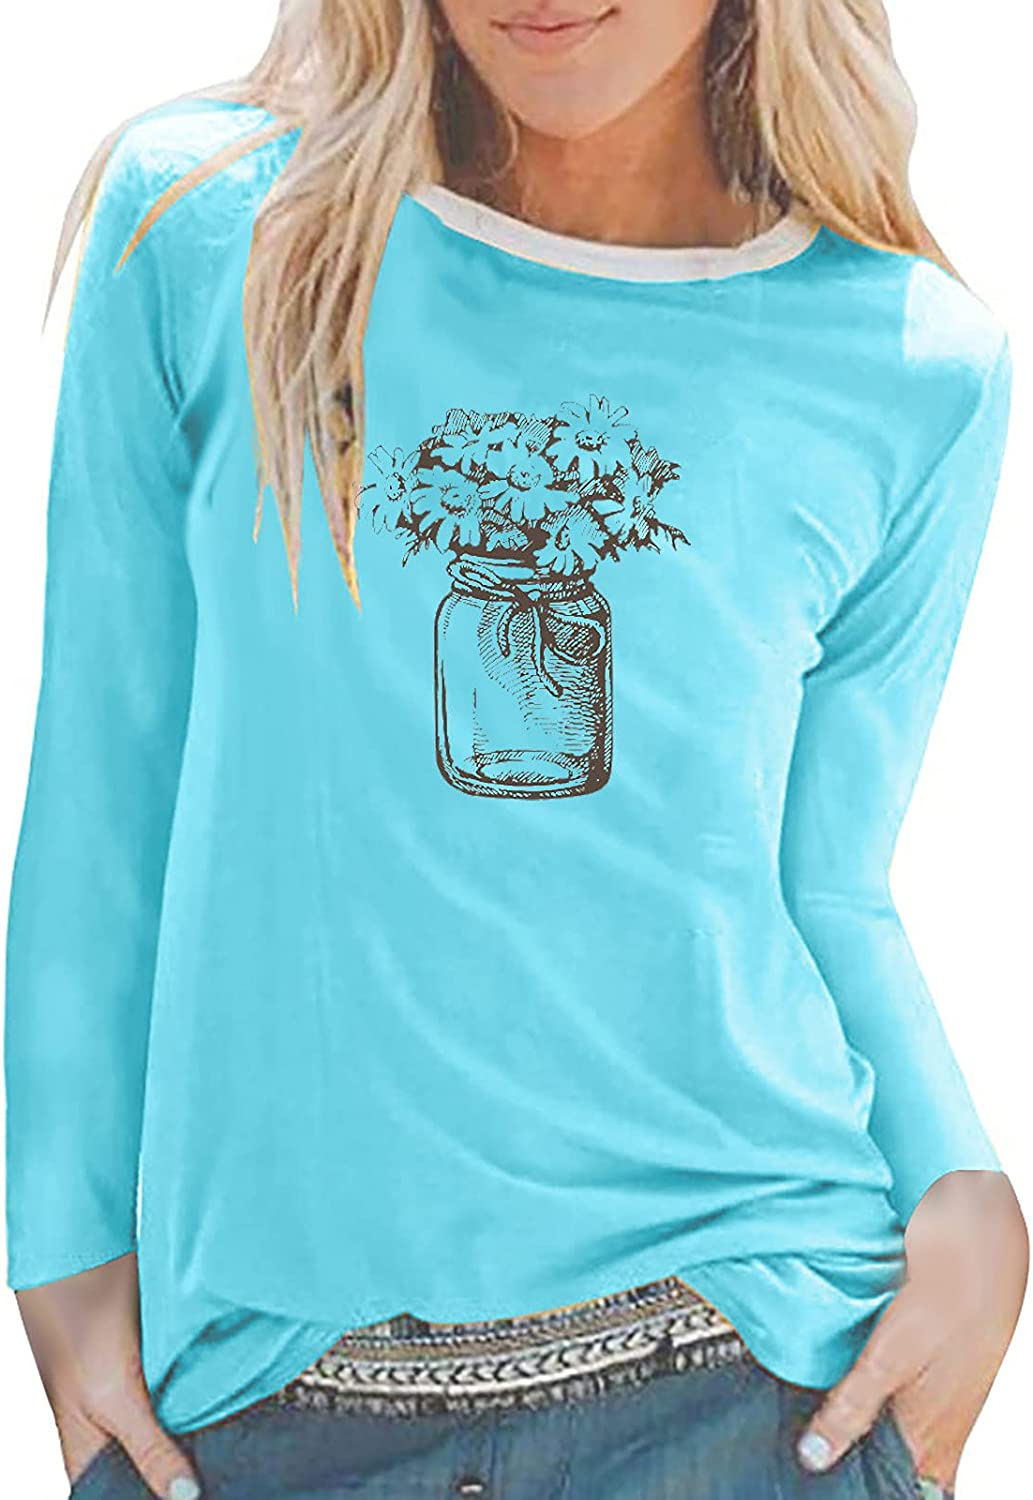 Auwer Women's Sunflower Straw Hat Print T-Shirts Casual Long Sleeve Tops Round Neck Tees Breathable Loose Fit Blouses Tunics